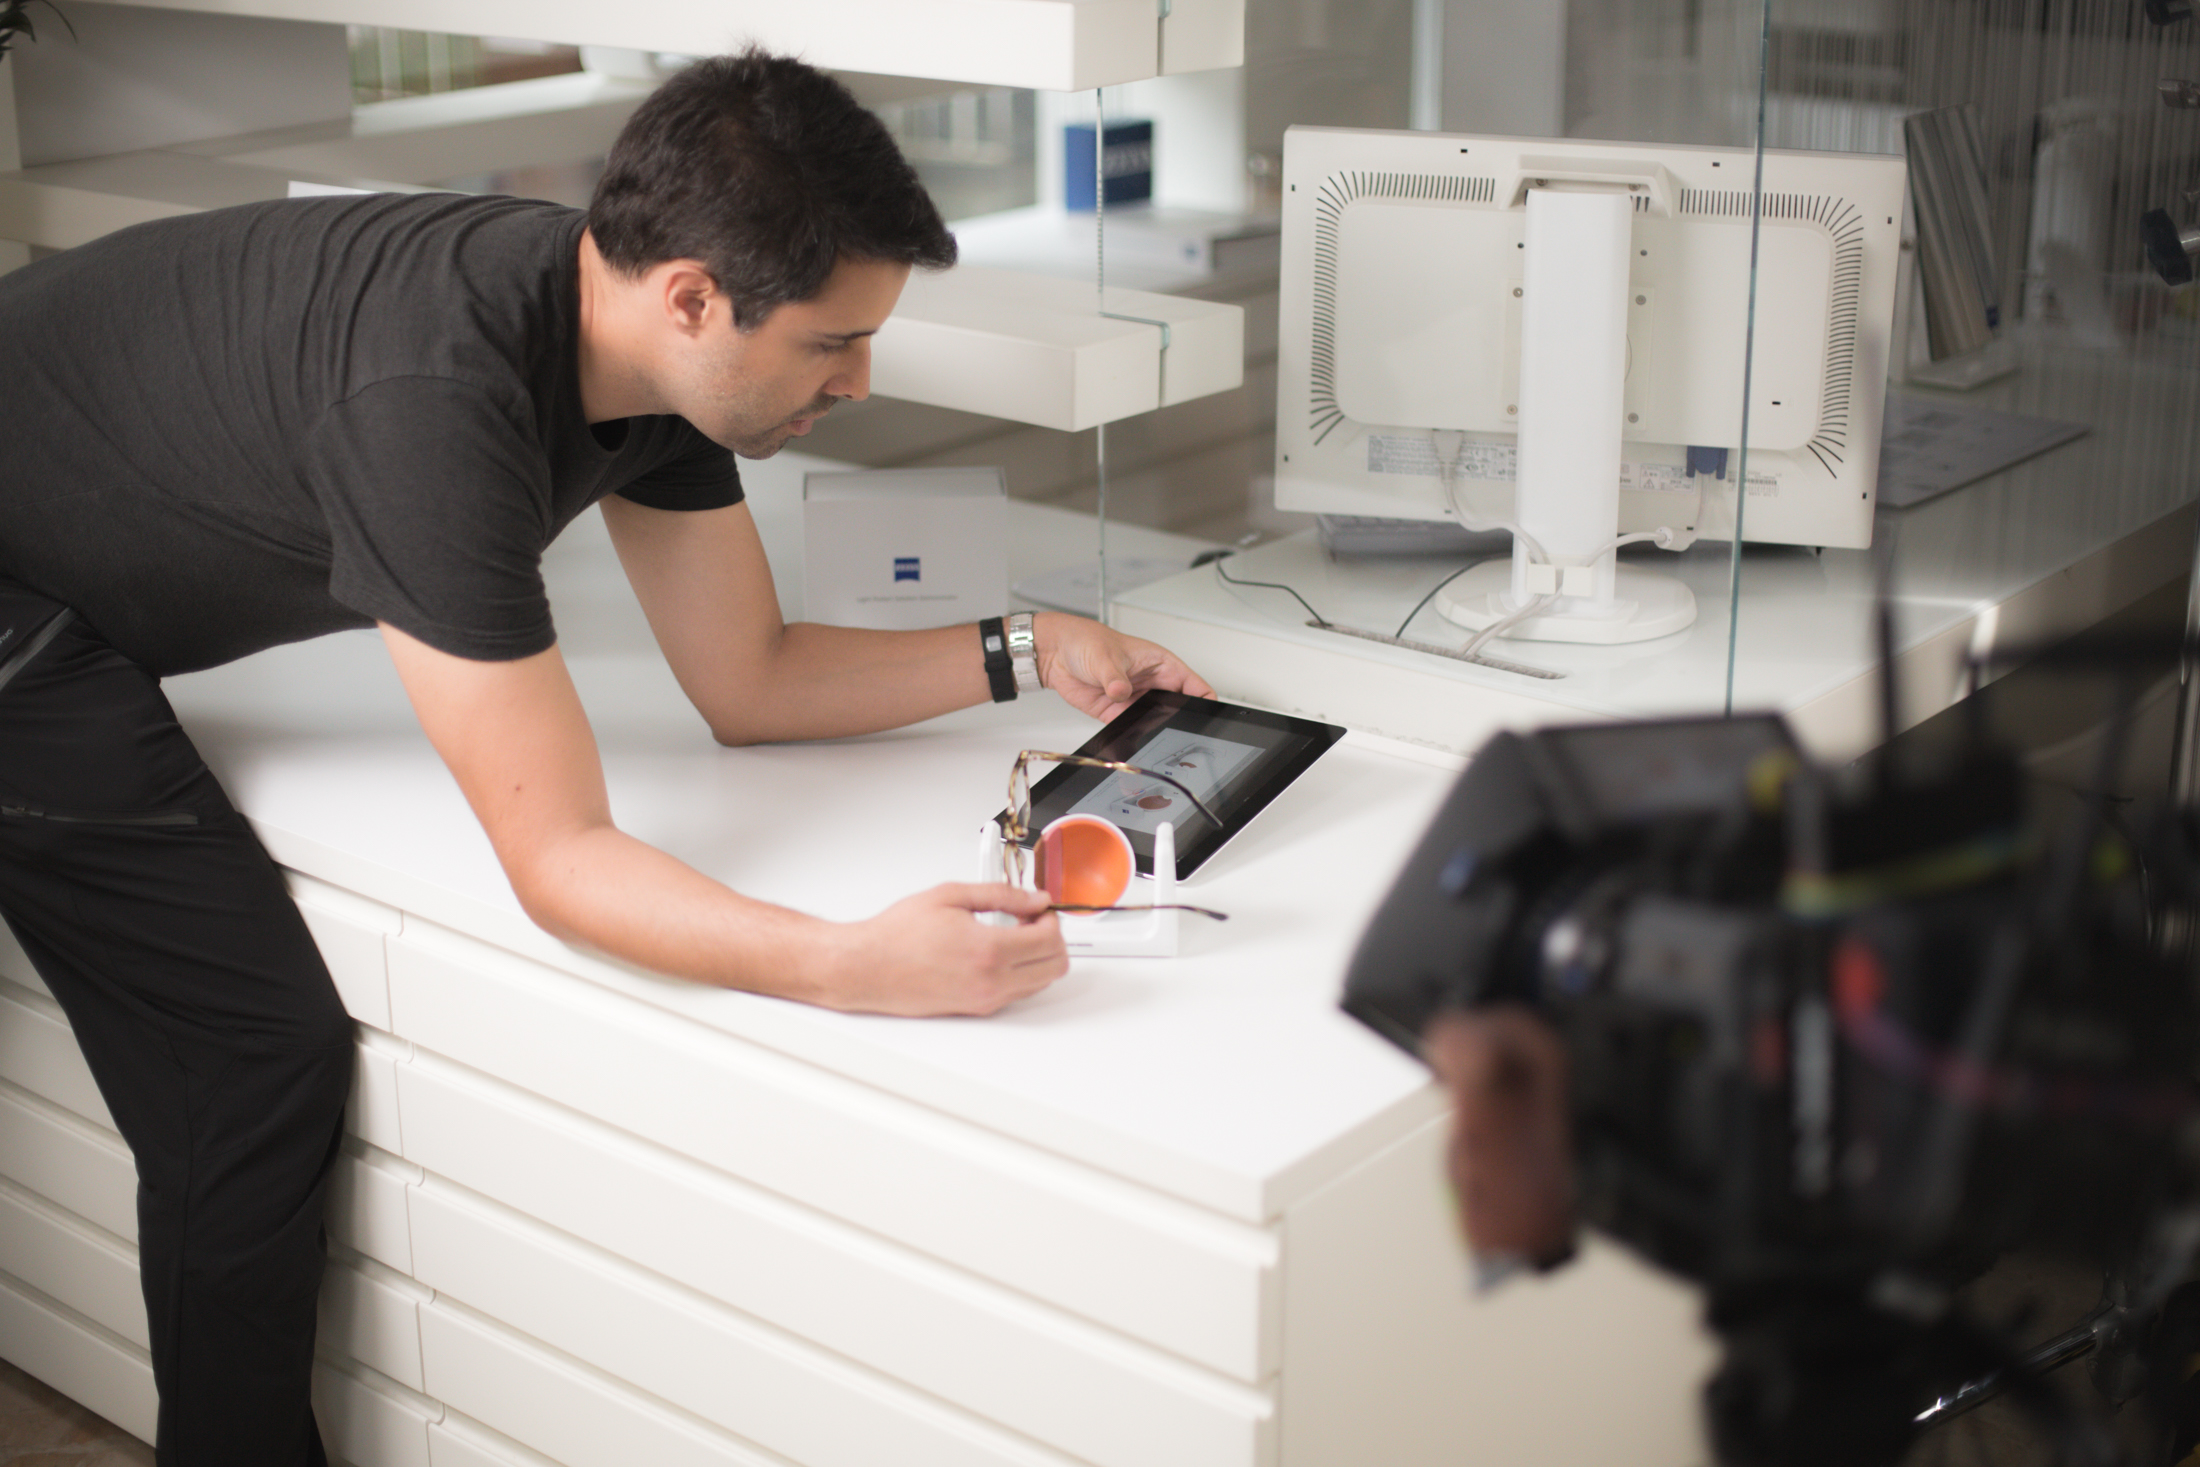 Making of Zeiss UVProtect campaign produced by APZmedia